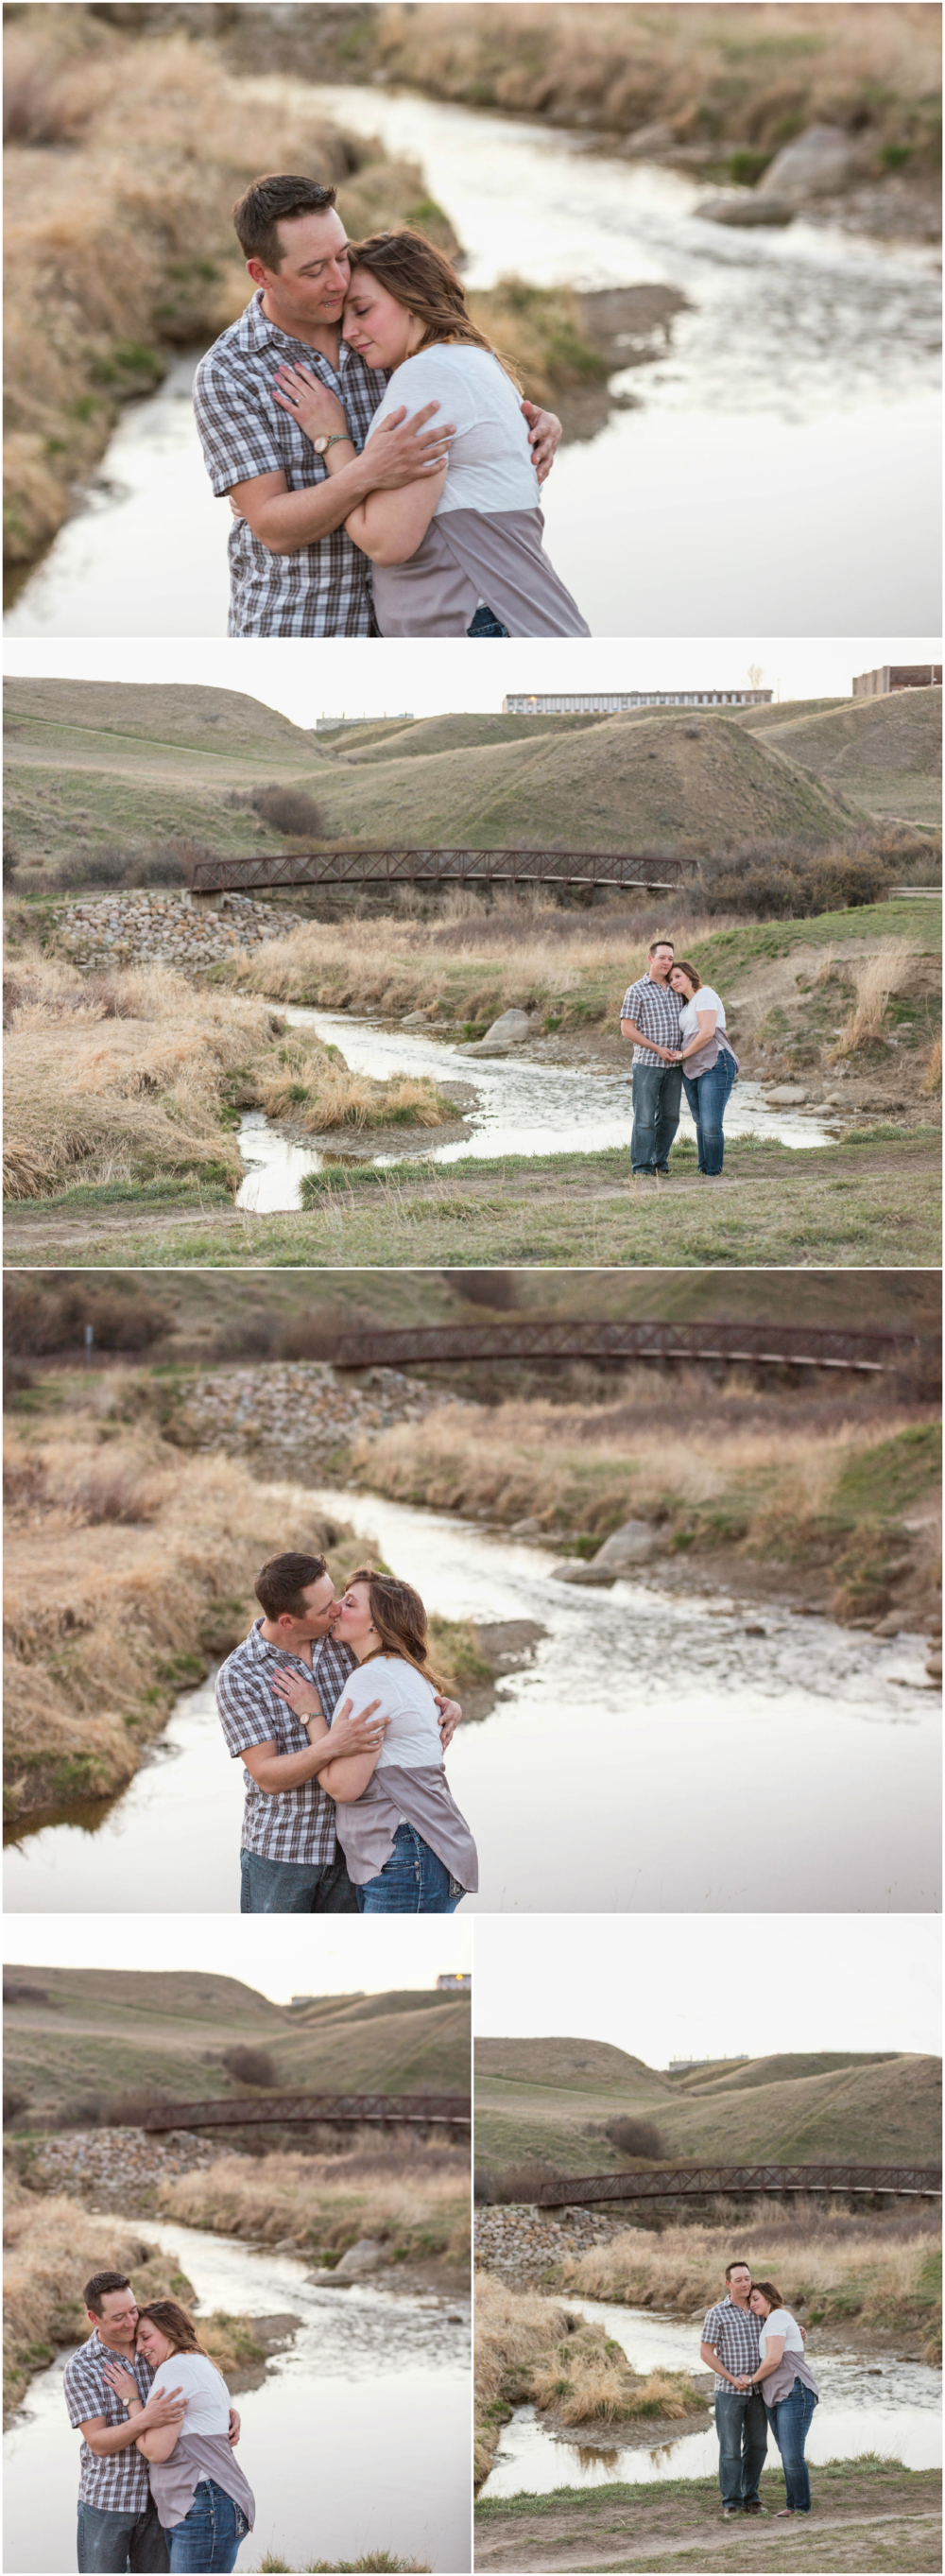 LR_medicinehat_wedding_engagement_3.png